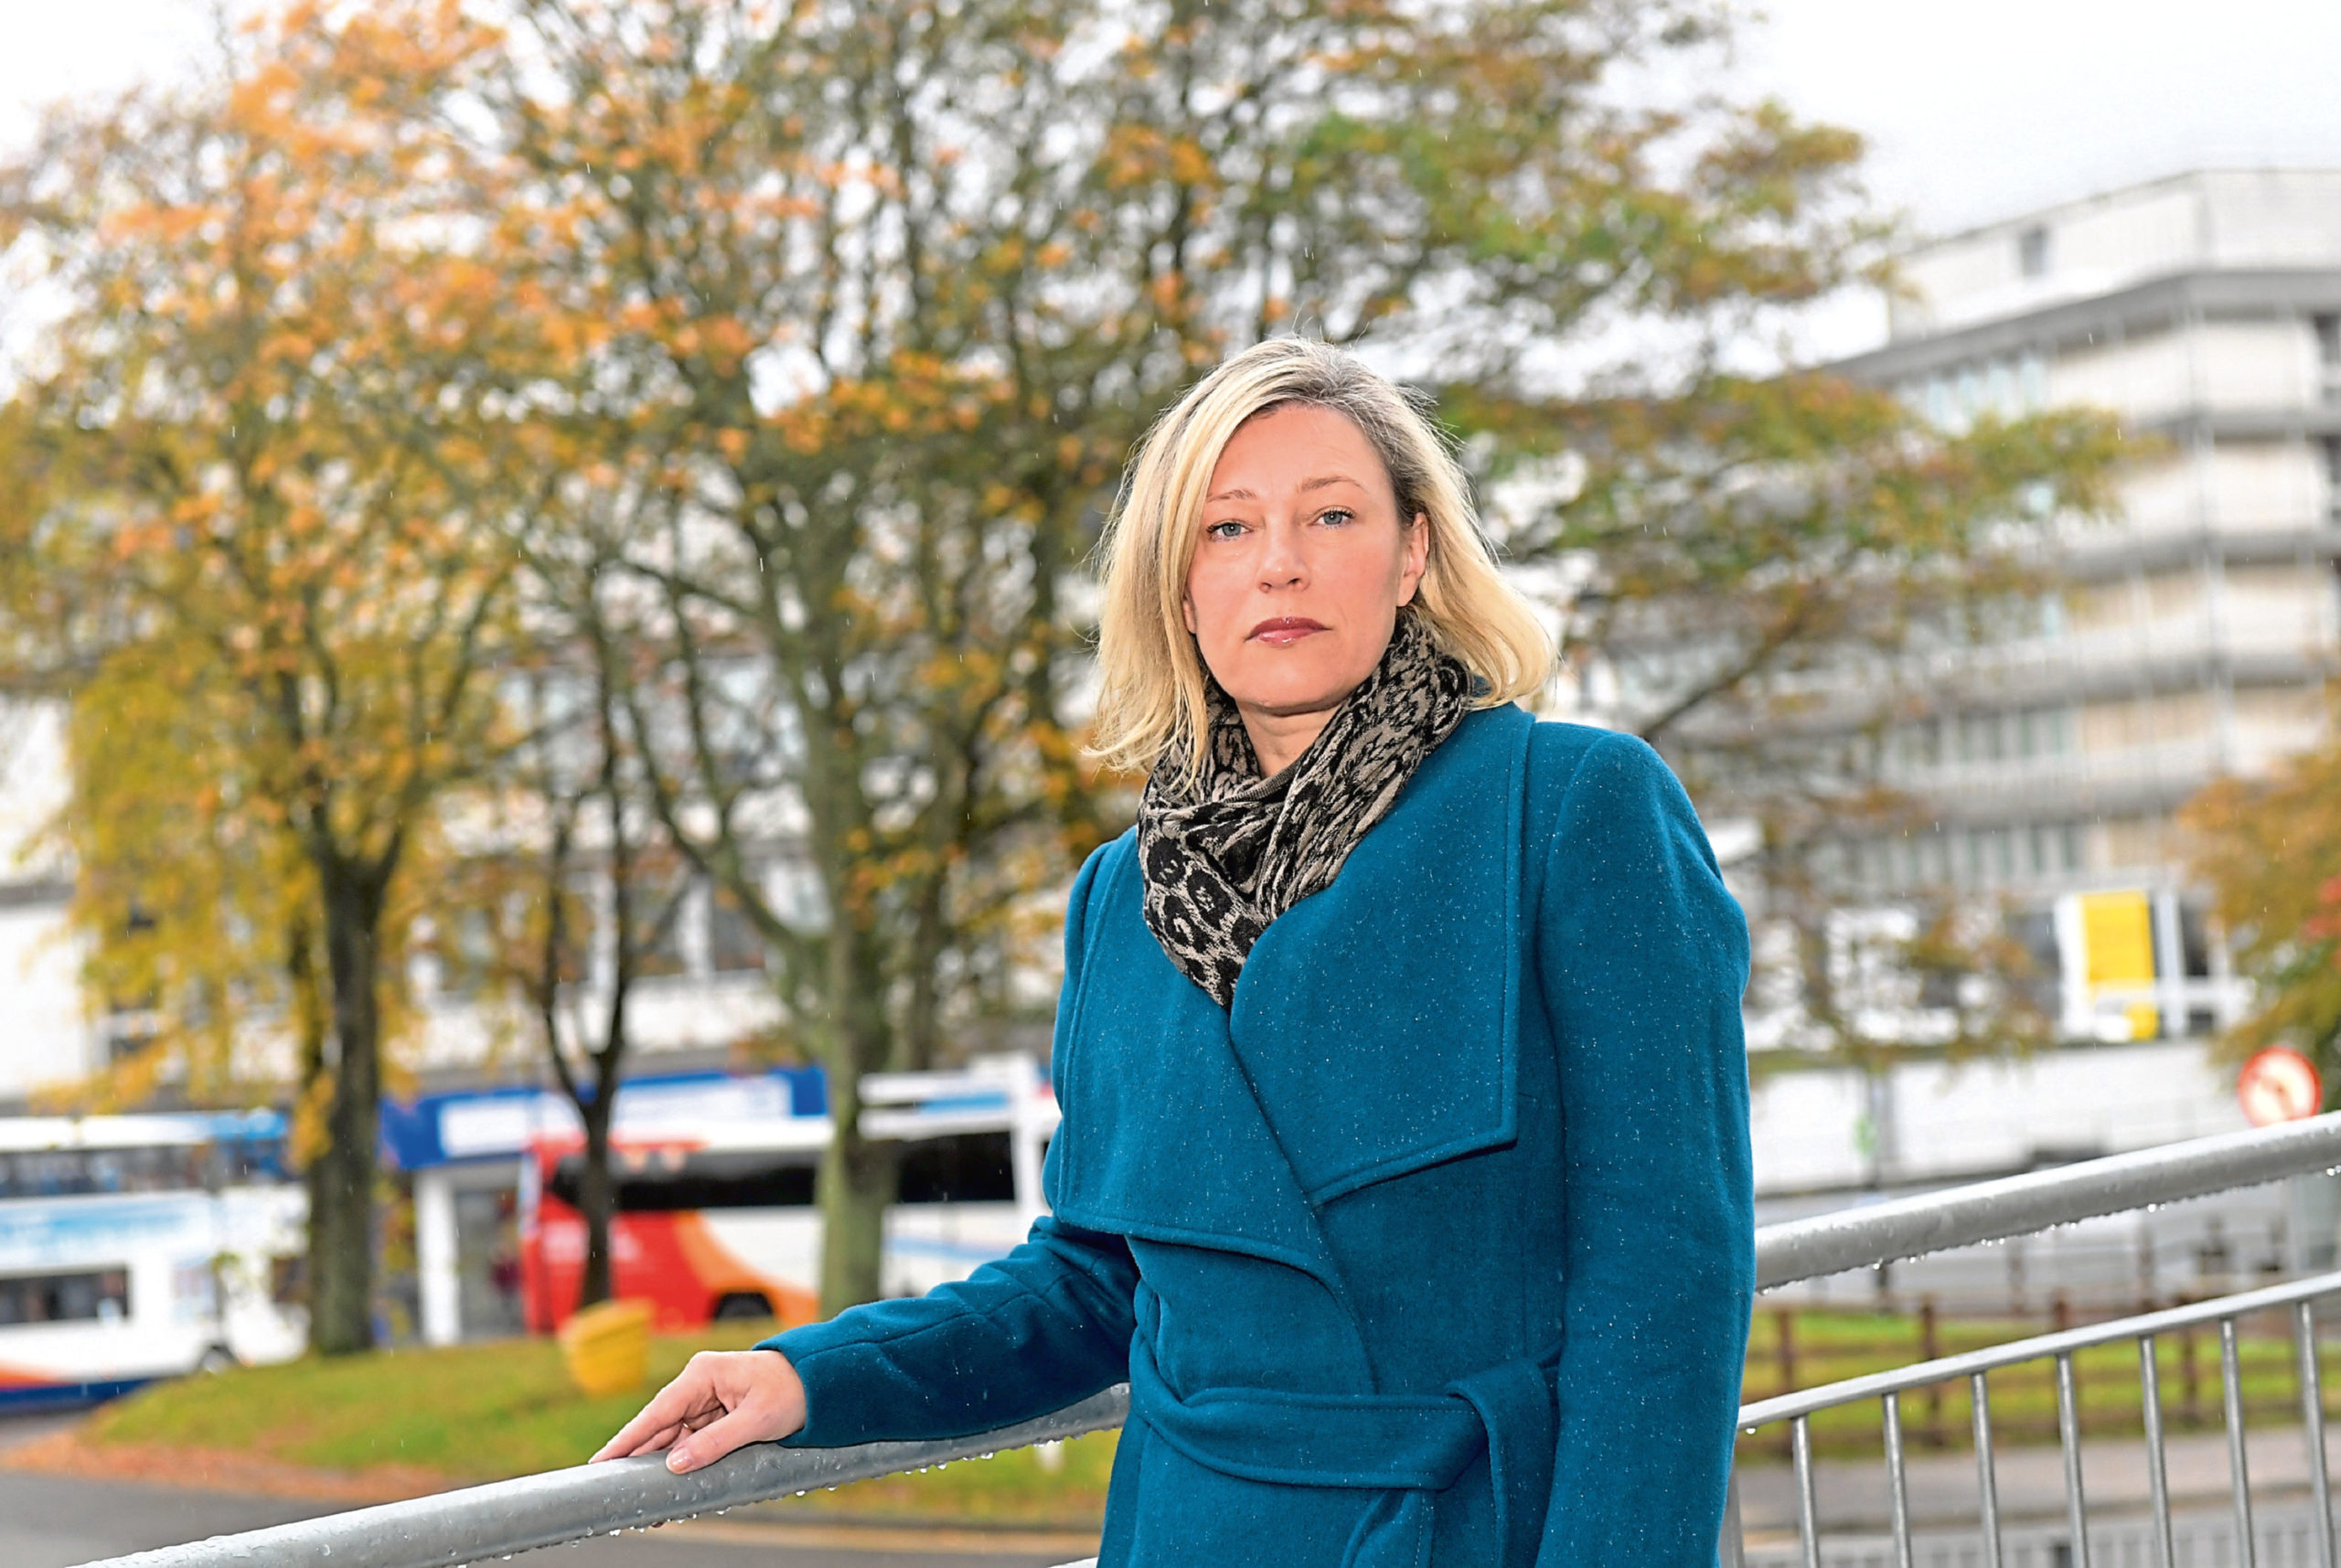 Gillian Martin has praised investment in superfast broadband